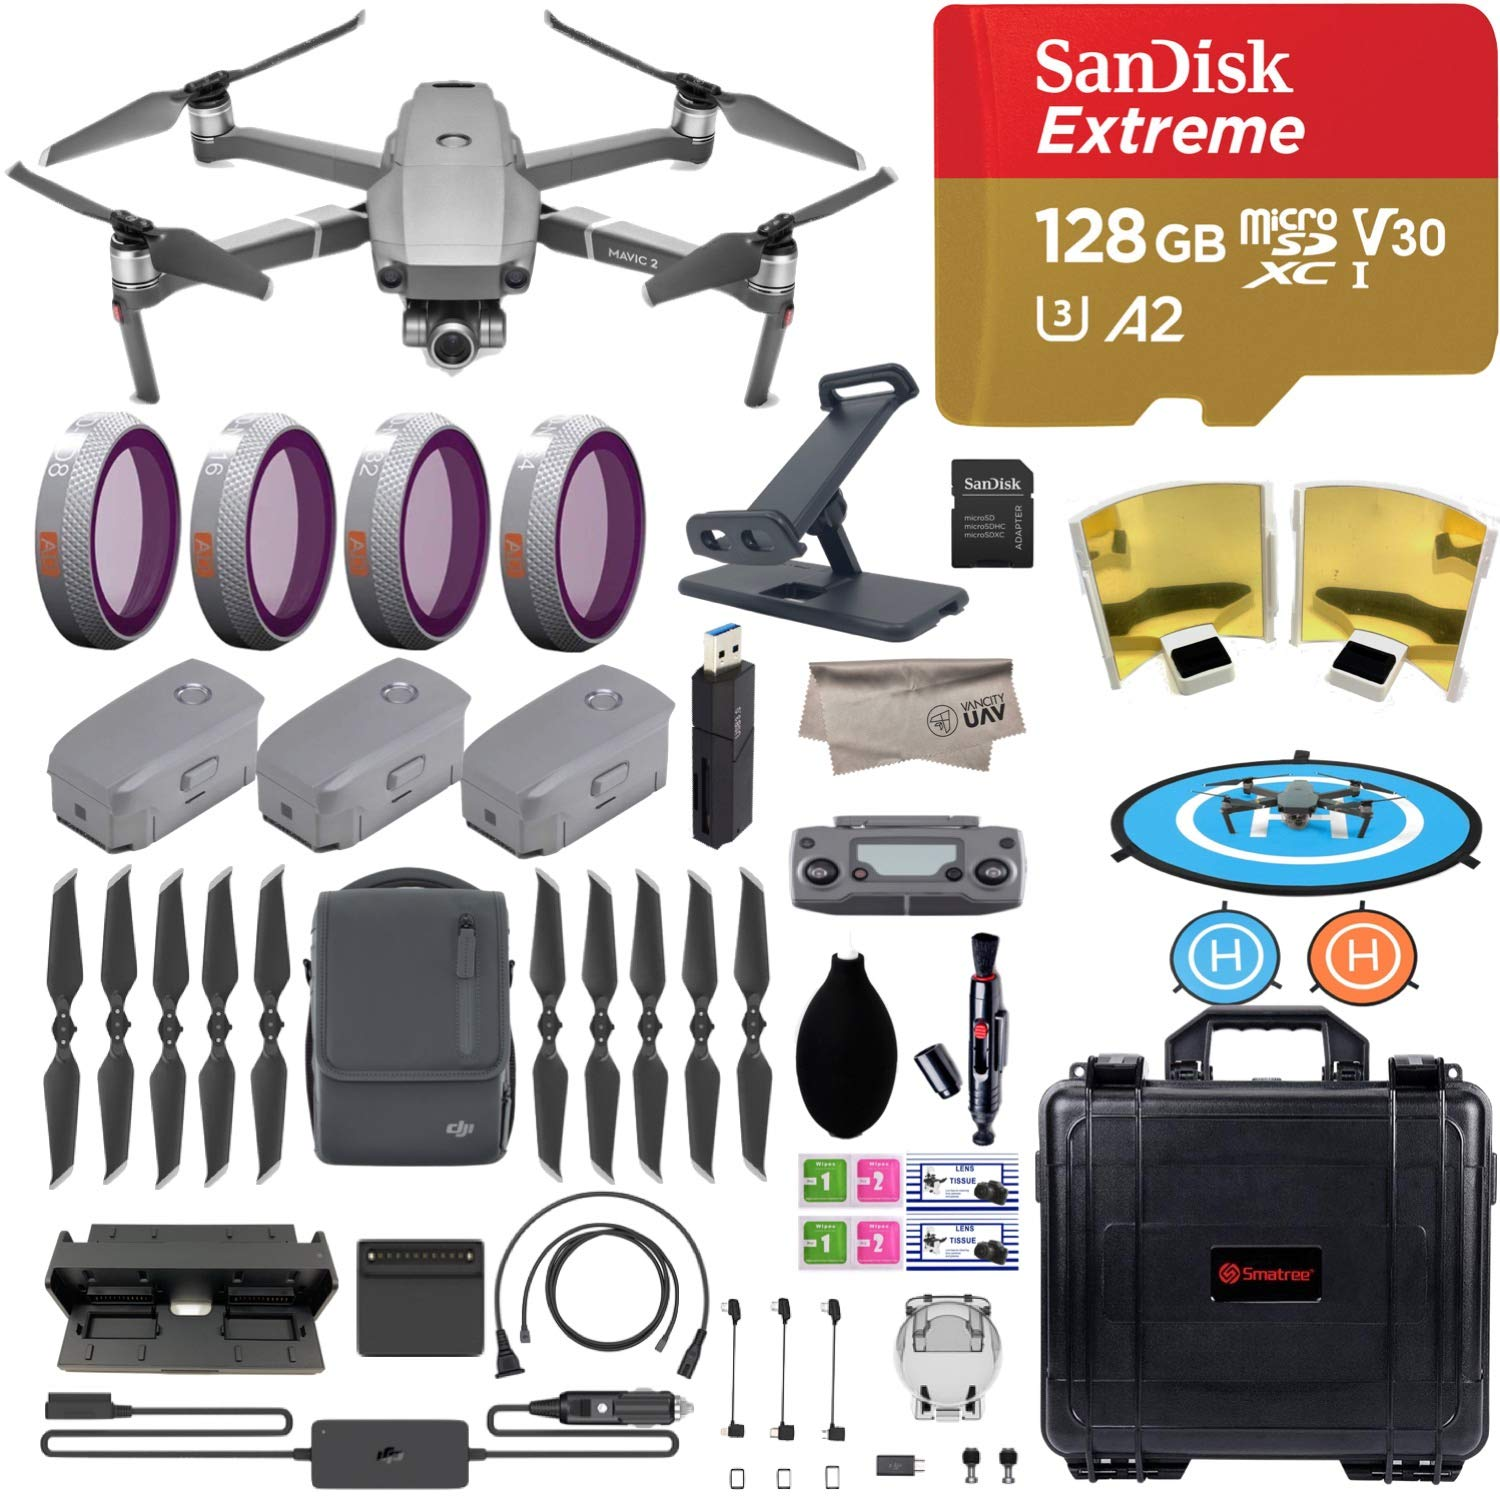 DJI Mavic 2 Zoom Drone Quadcopter with Fly More Combo, 3 Batteries, PGY ND Filters & Pad Holder, 128GB Extreme Micro SD, Landing Pad, Signal Booster, Extra Hard Carrying Case by DJI